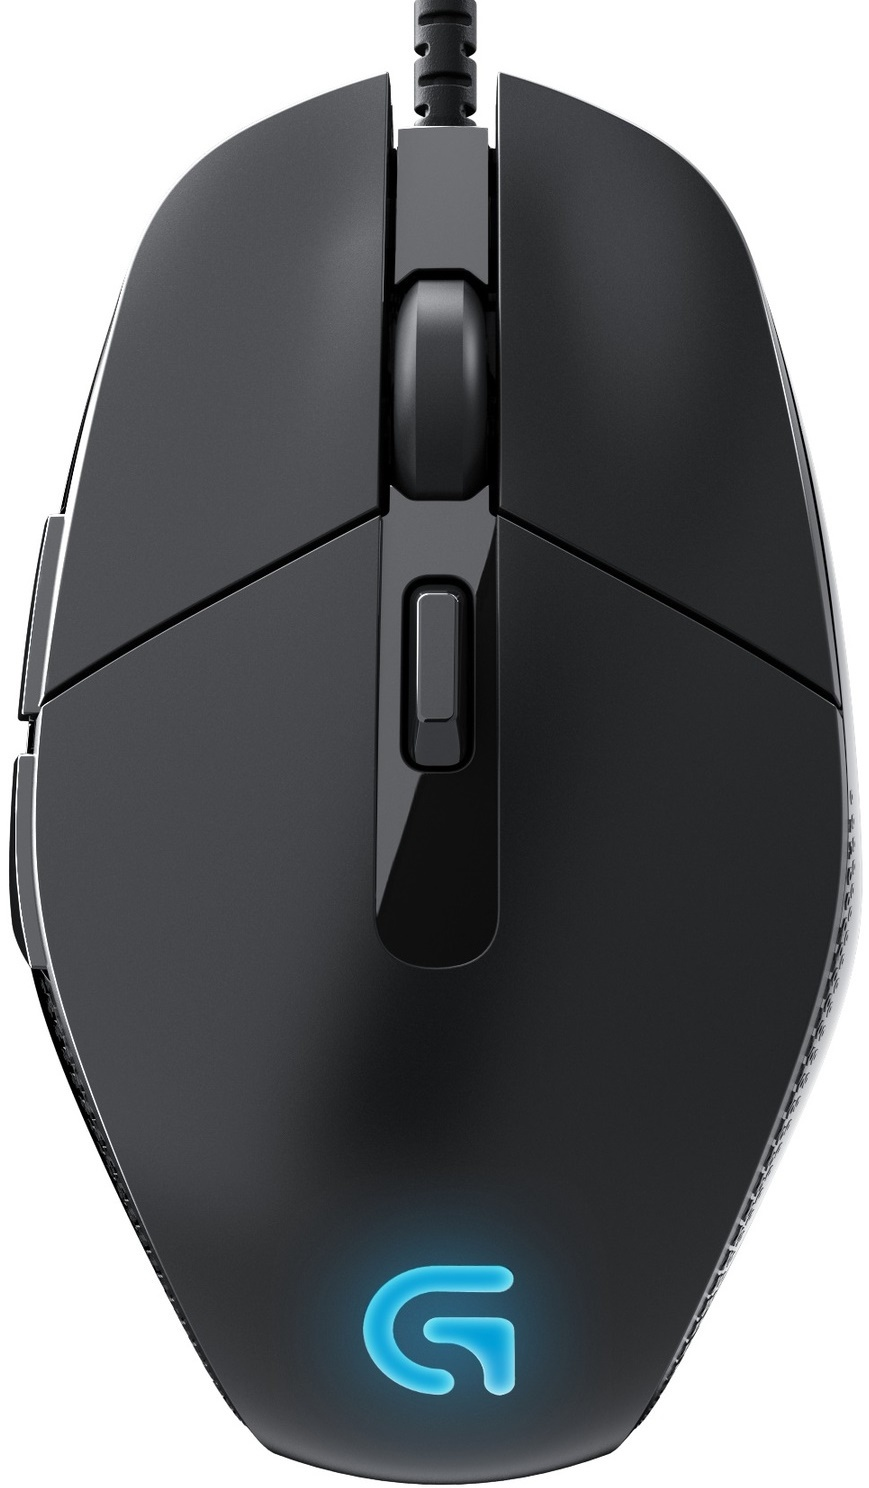 e6e36598c1c Logitech G302 MOBA Gaming Mouse | | On Sale Now | at Mighty Ape NZ